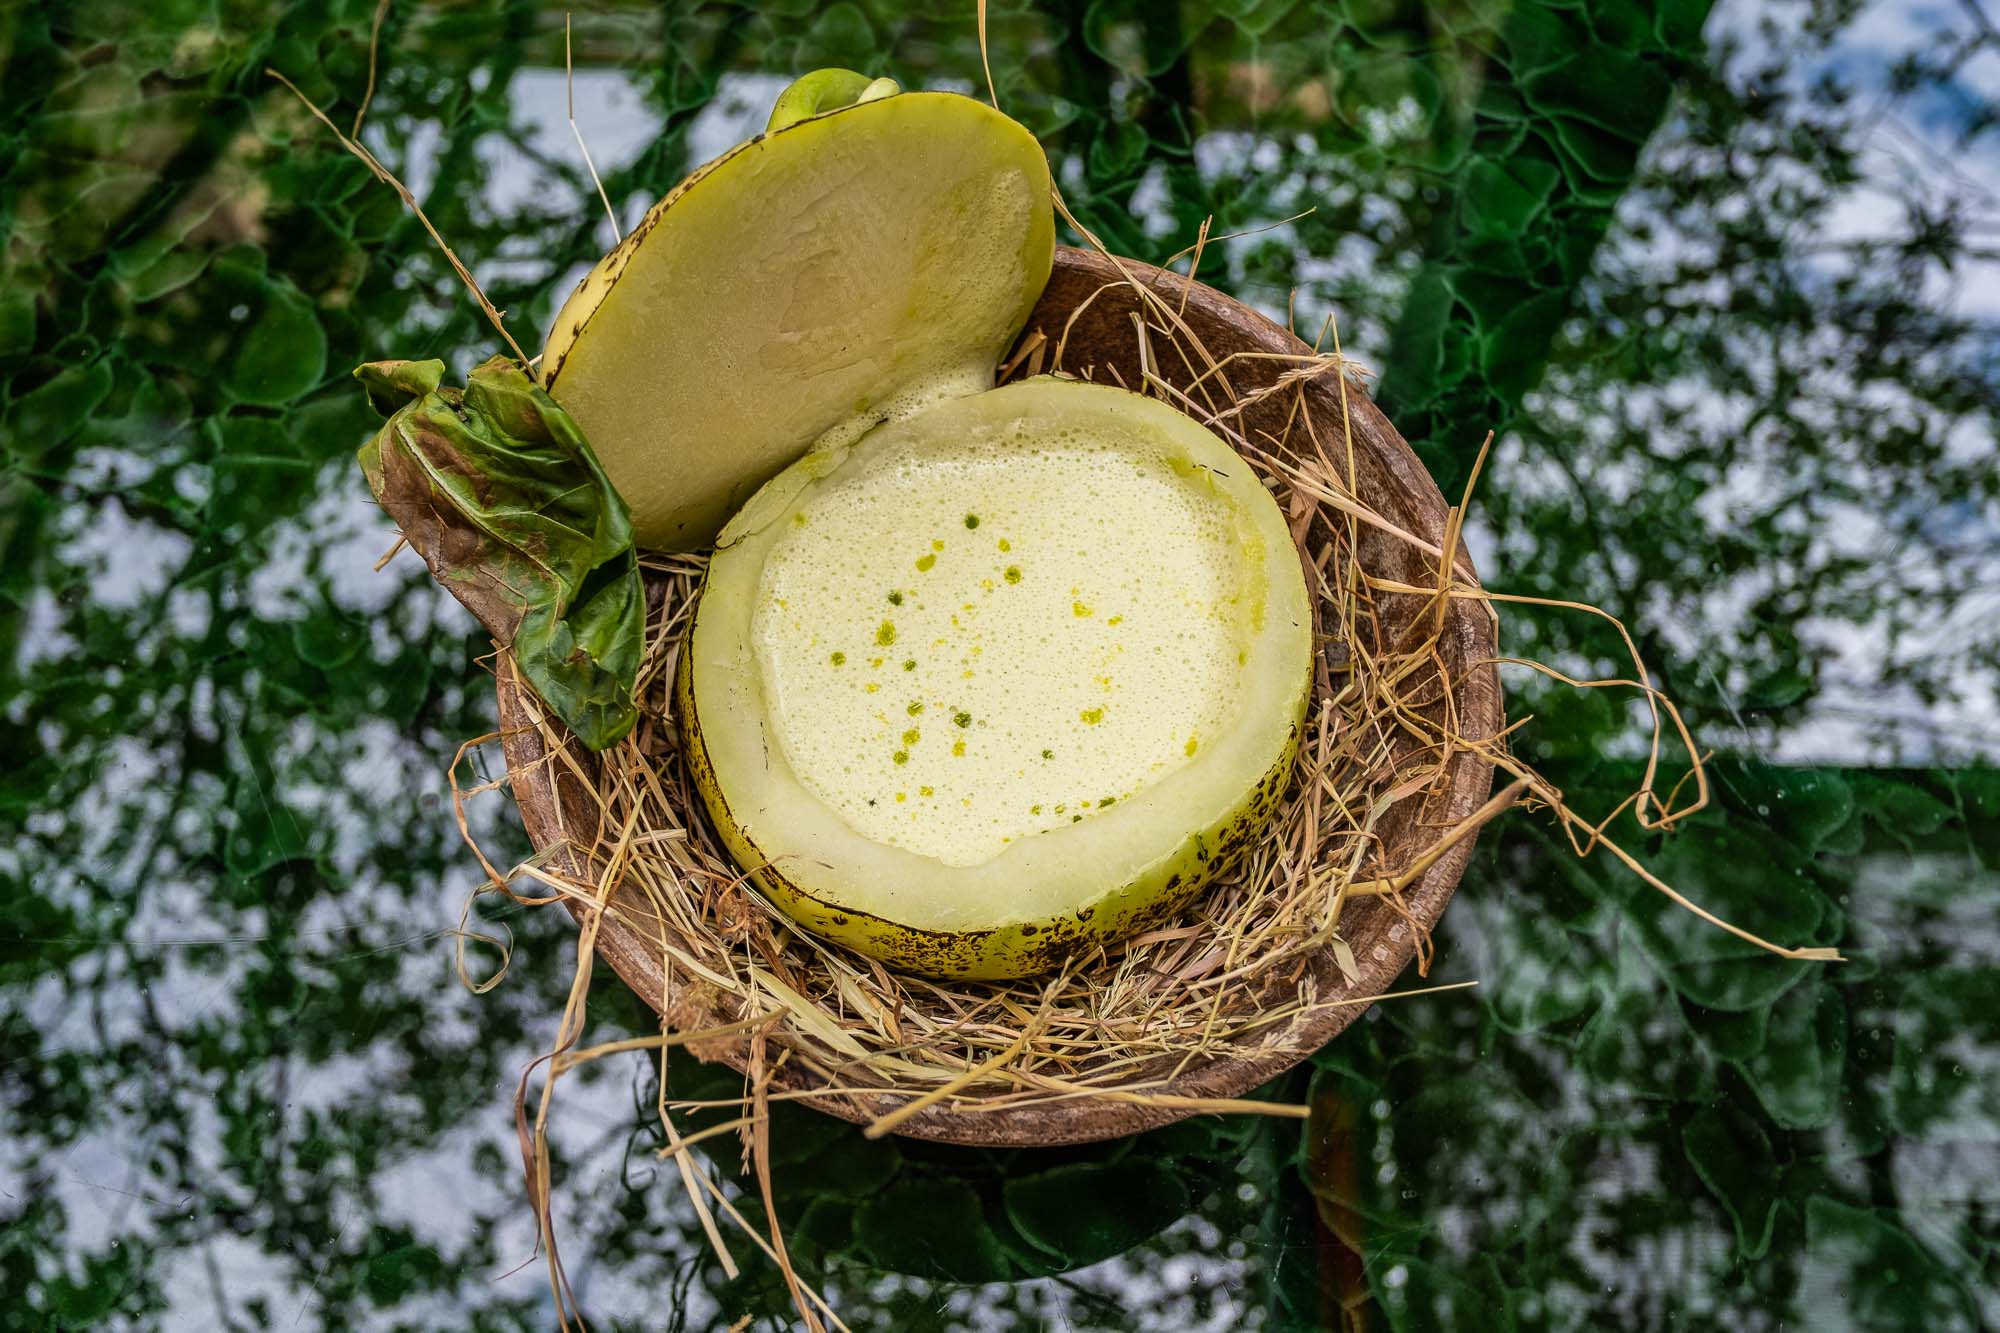 Native_kohlrabi sliced open with soup inside